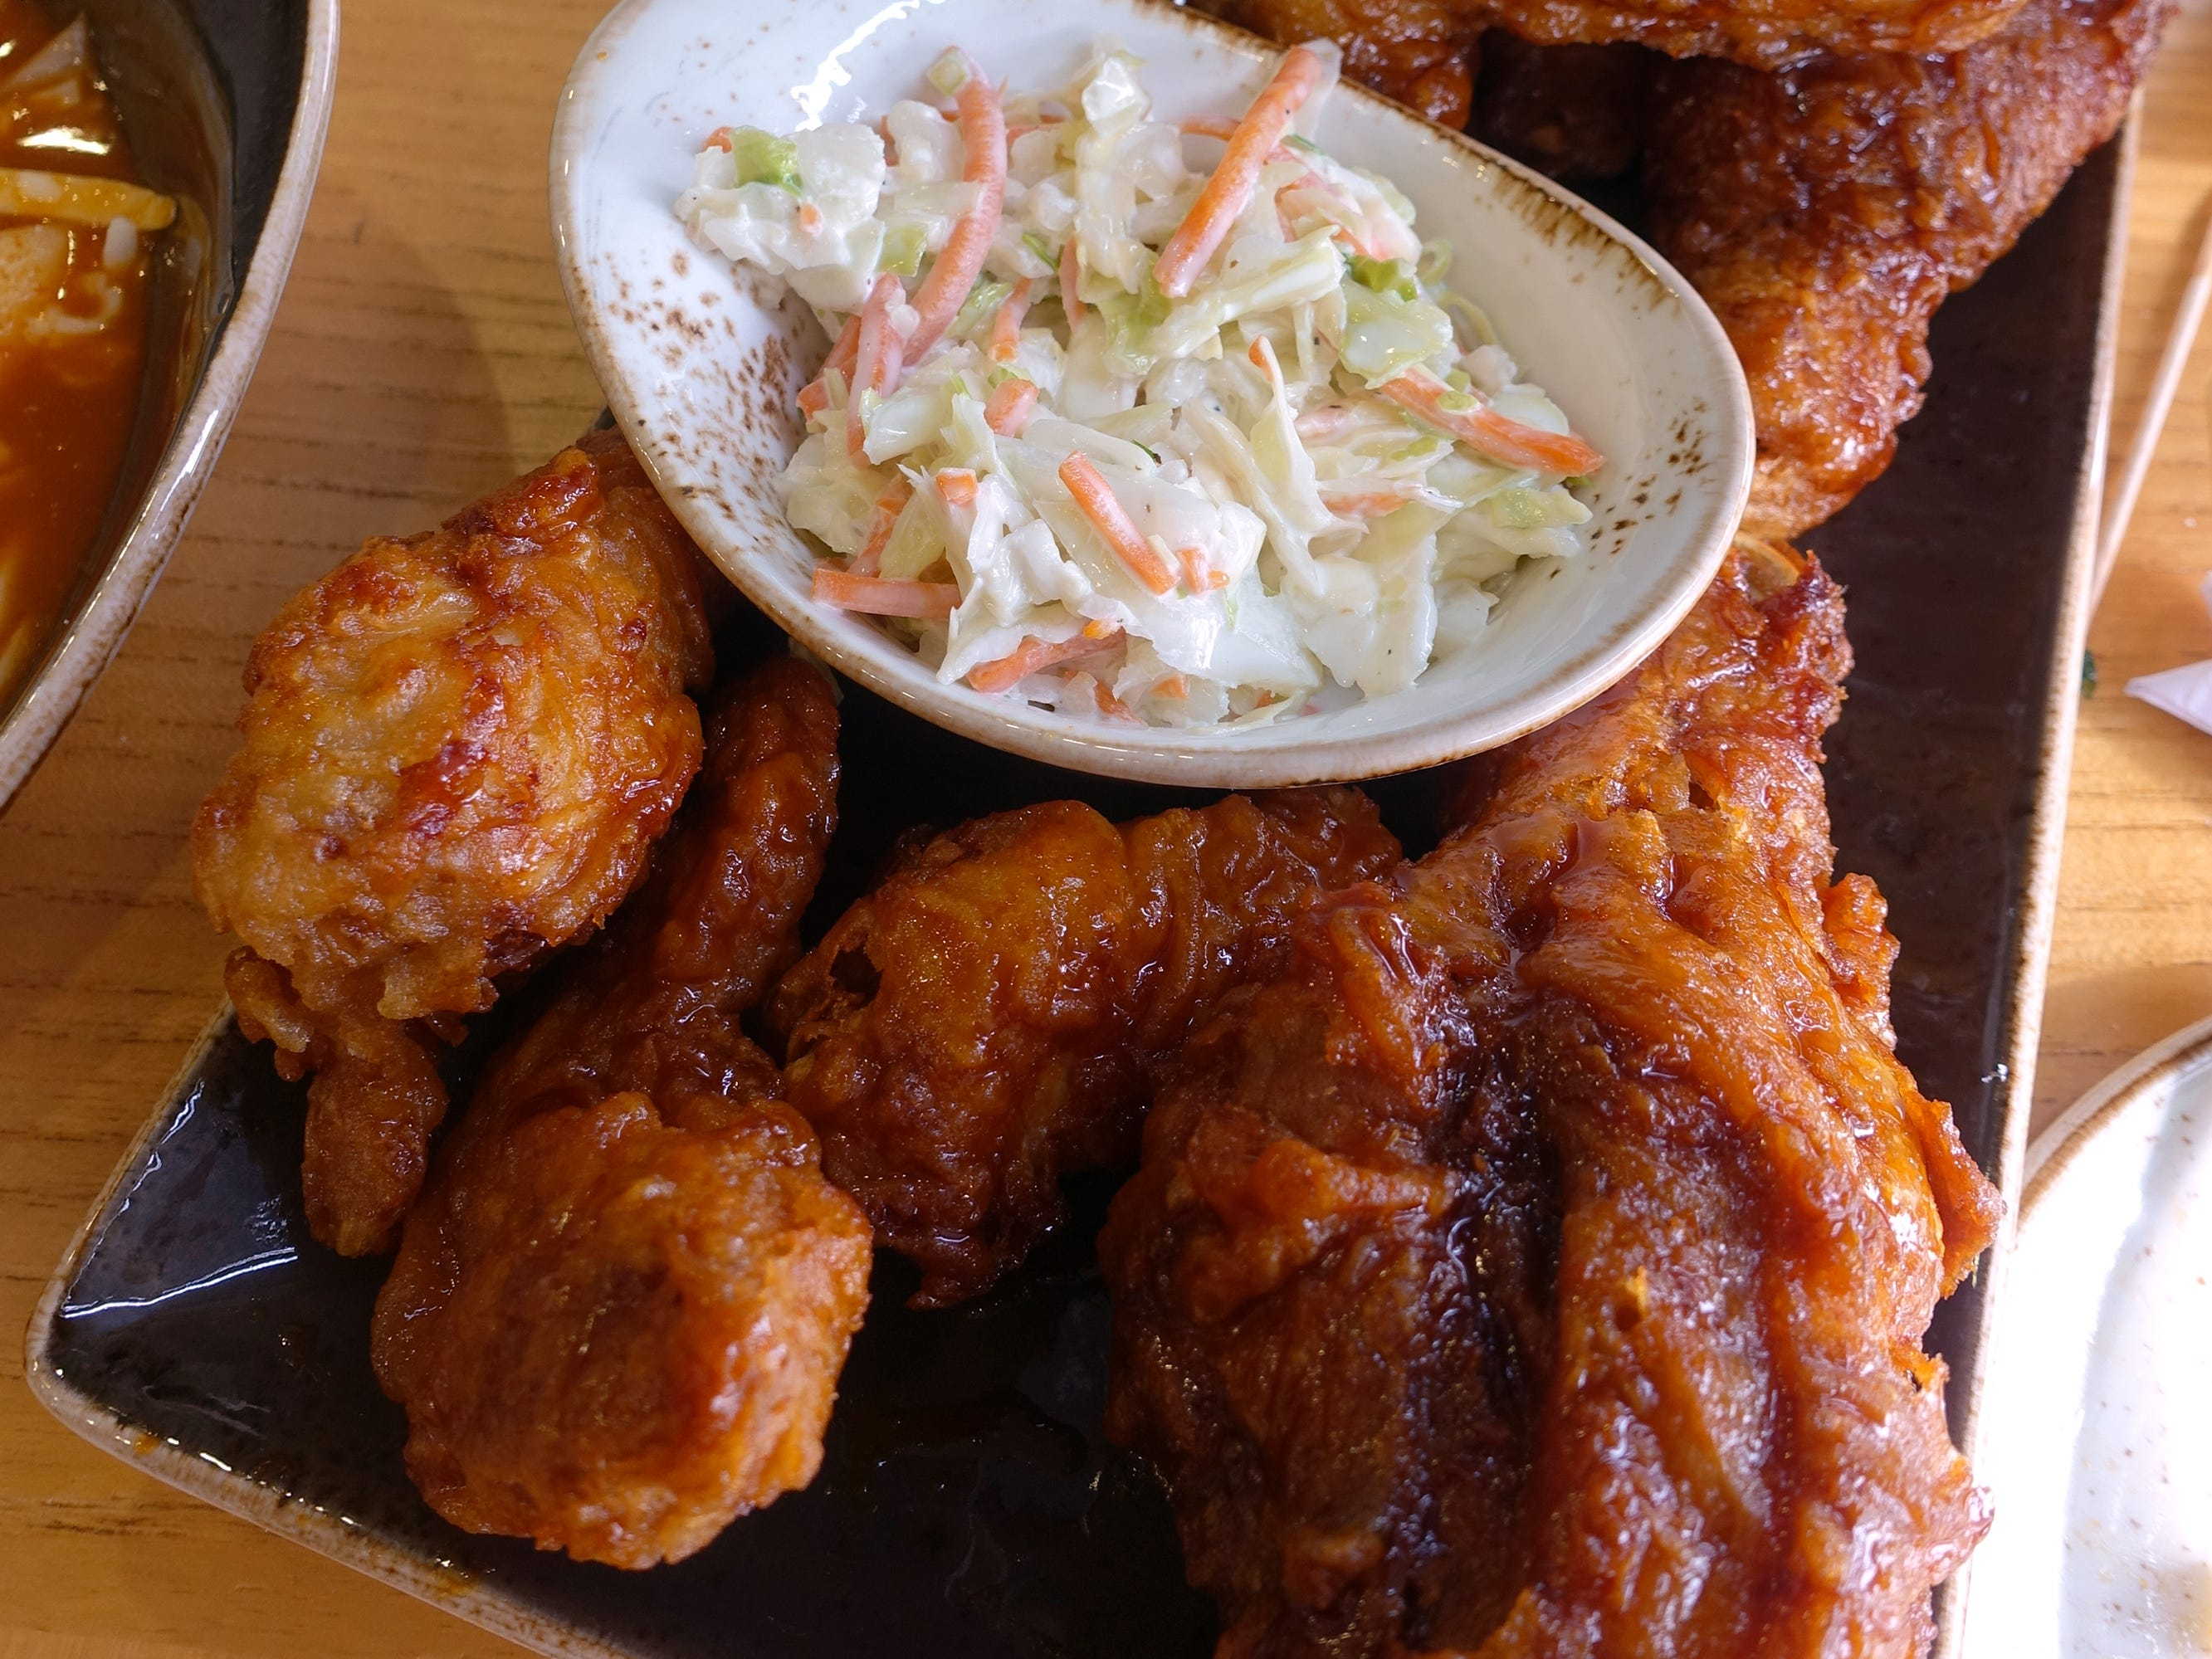 Spicy fried chicken (foreground) and garlic soy fried chicken (background) with coleslaw at Bonchon in Tempe.